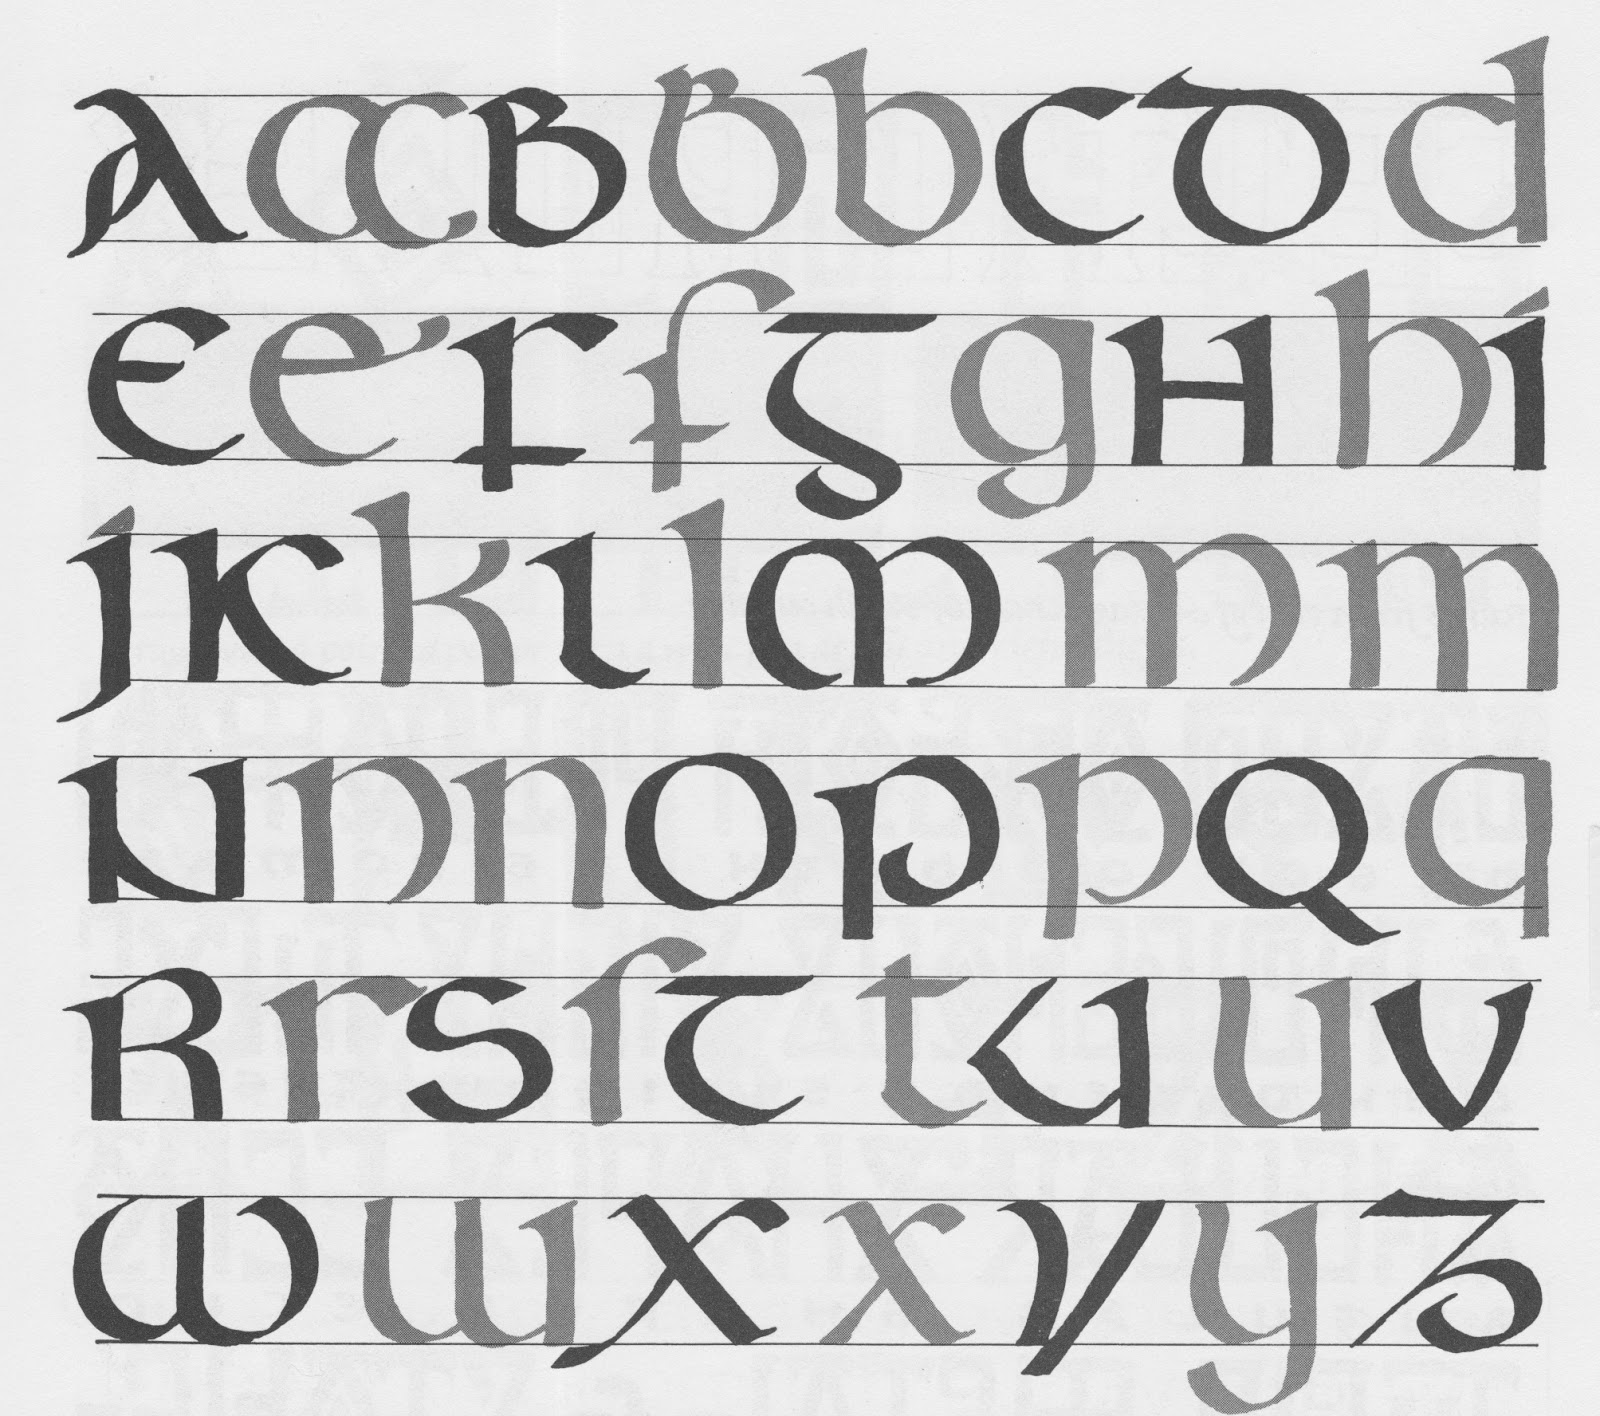 celtic script writing Celtic script writing free downloads - 2000 shareware periodically updates software information and pricing of celtic script writing from the publisher, so some .